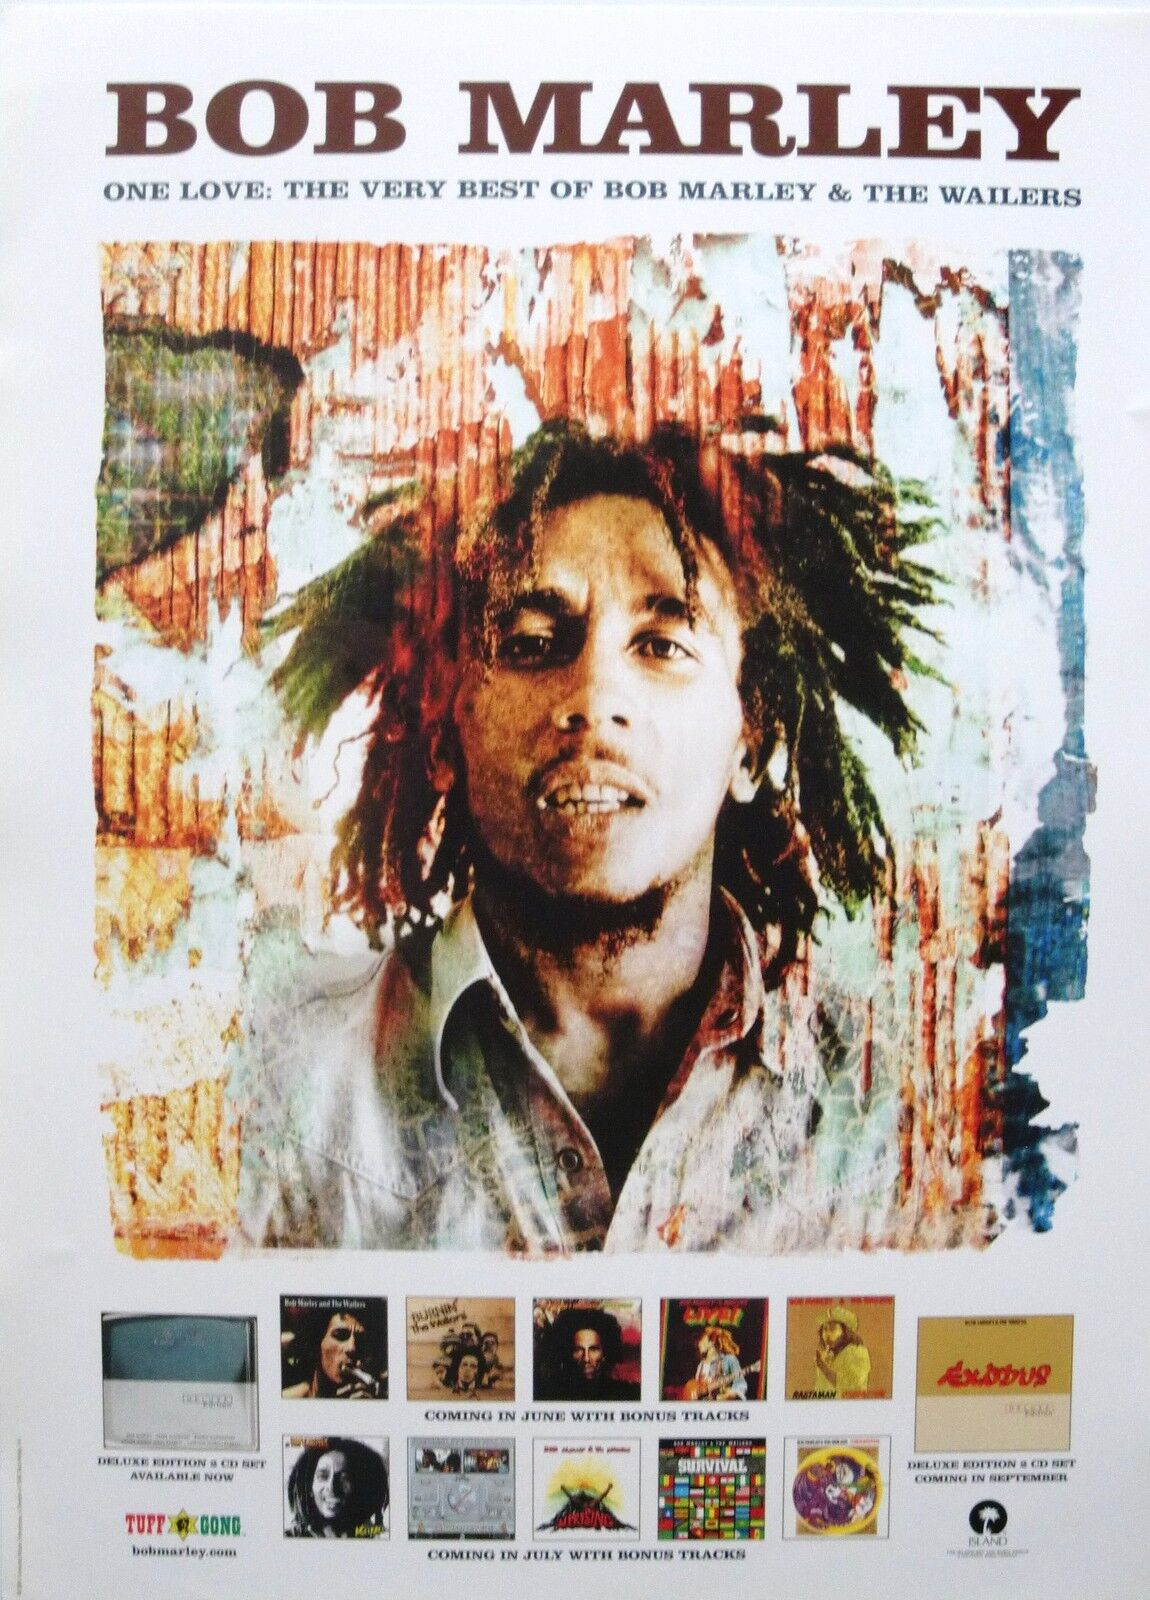 bob marley wailers one love the very best u s promo poster reggae music ebay. Black Bedroom Furniture Sets. Home Design Ideas